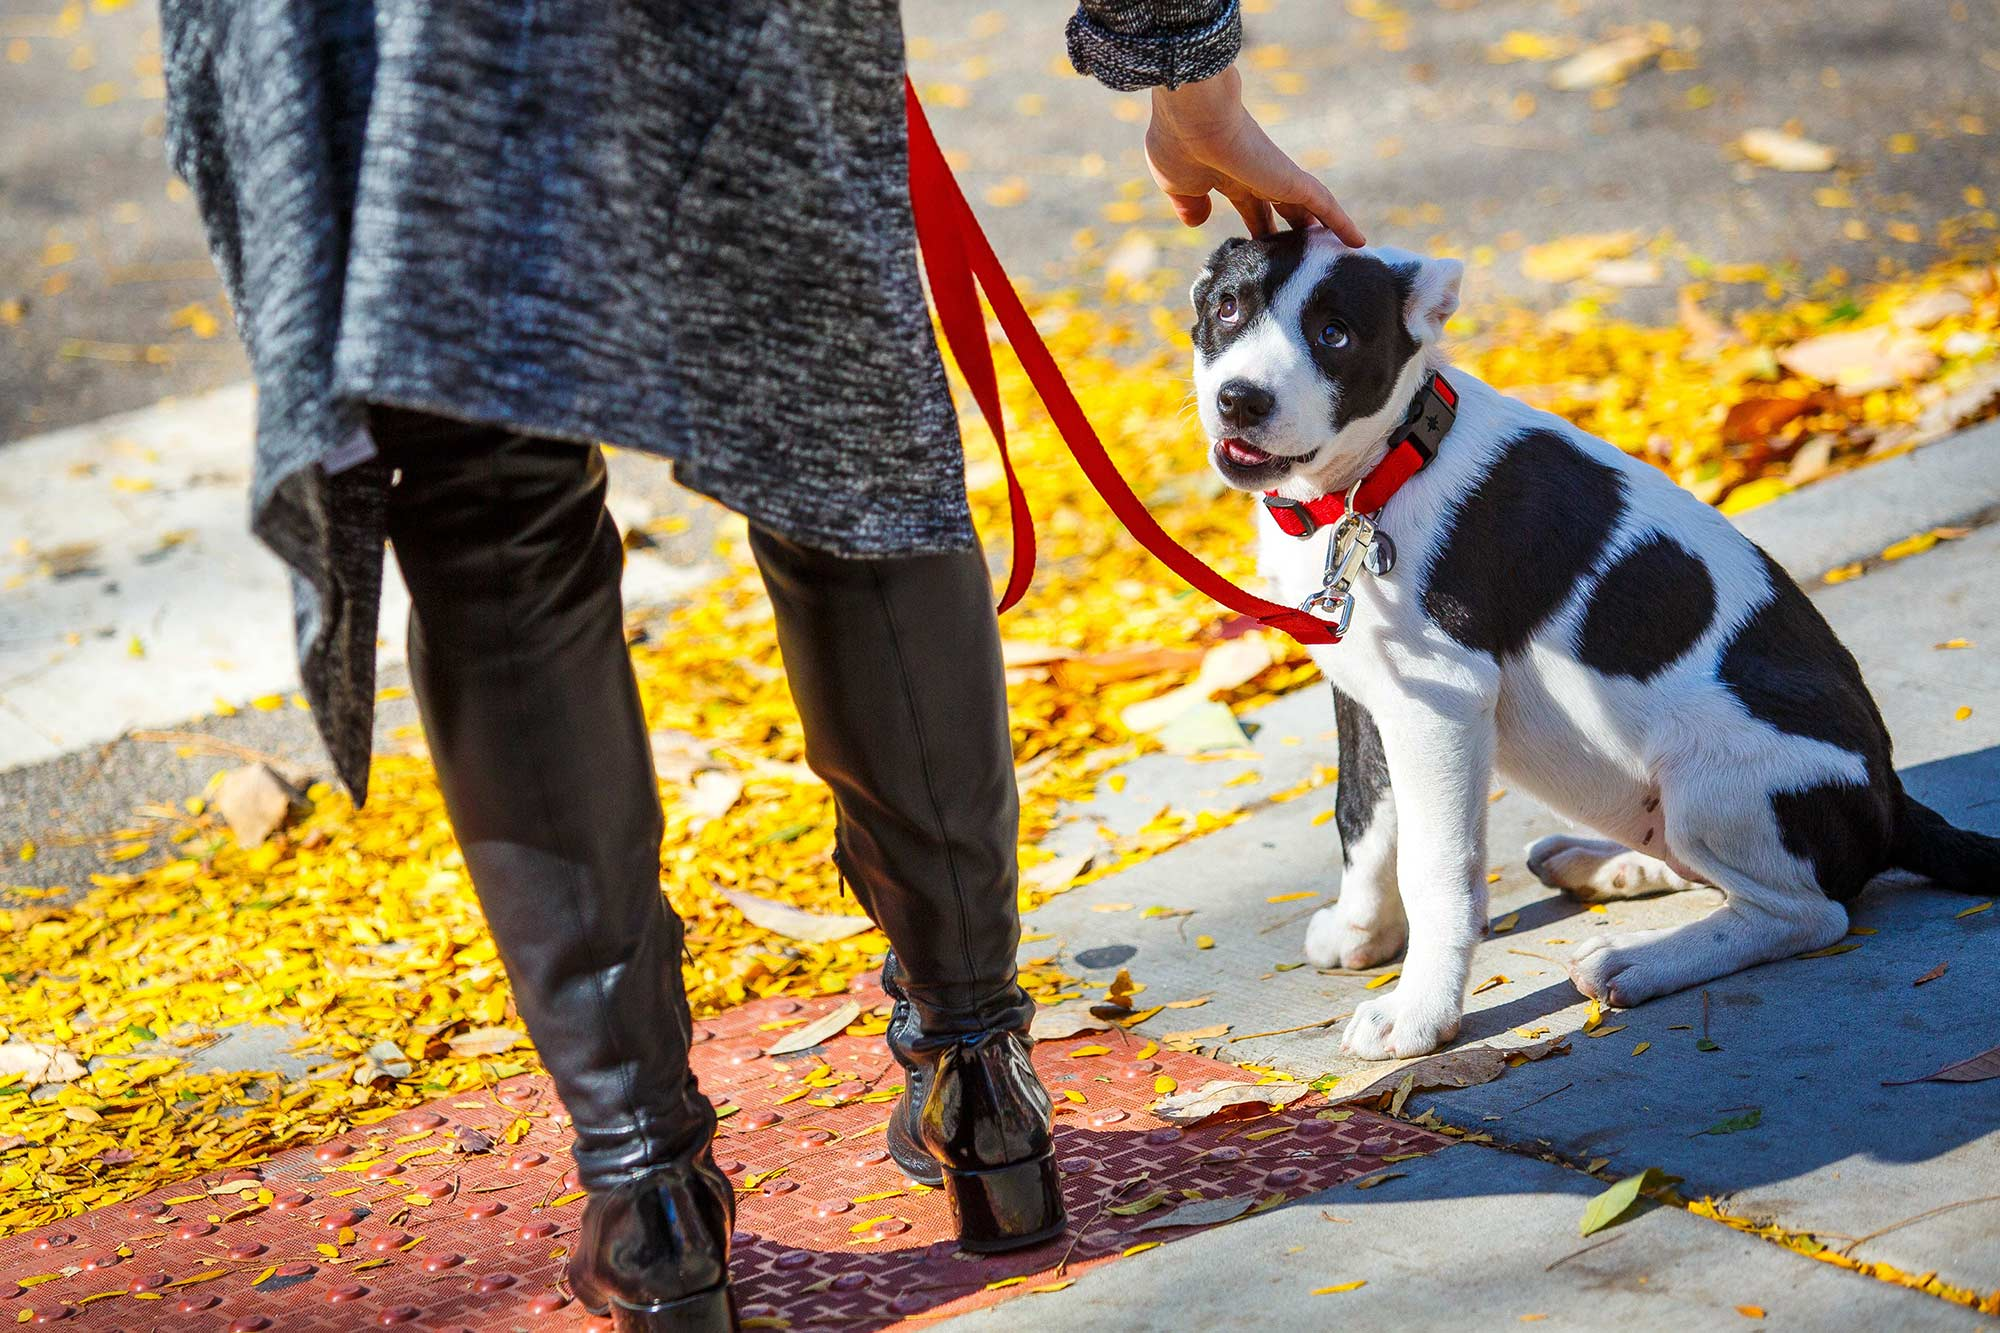 Lincoln Park Puppy, Chicago, IL - 10/19/15